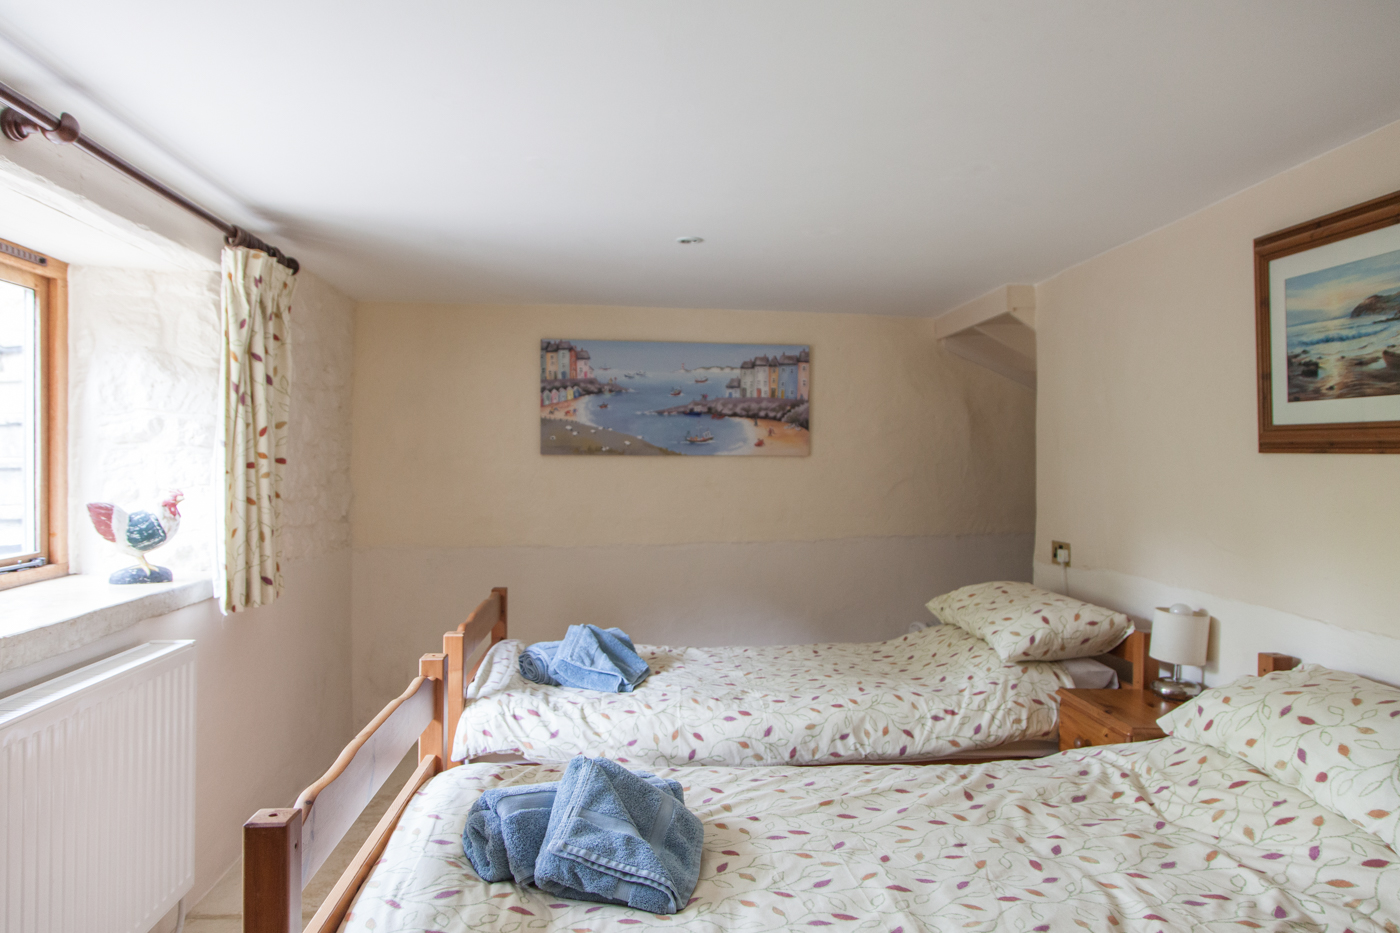 Cider Barn Holiday Home To Rent In Dorset Bridport Cottages